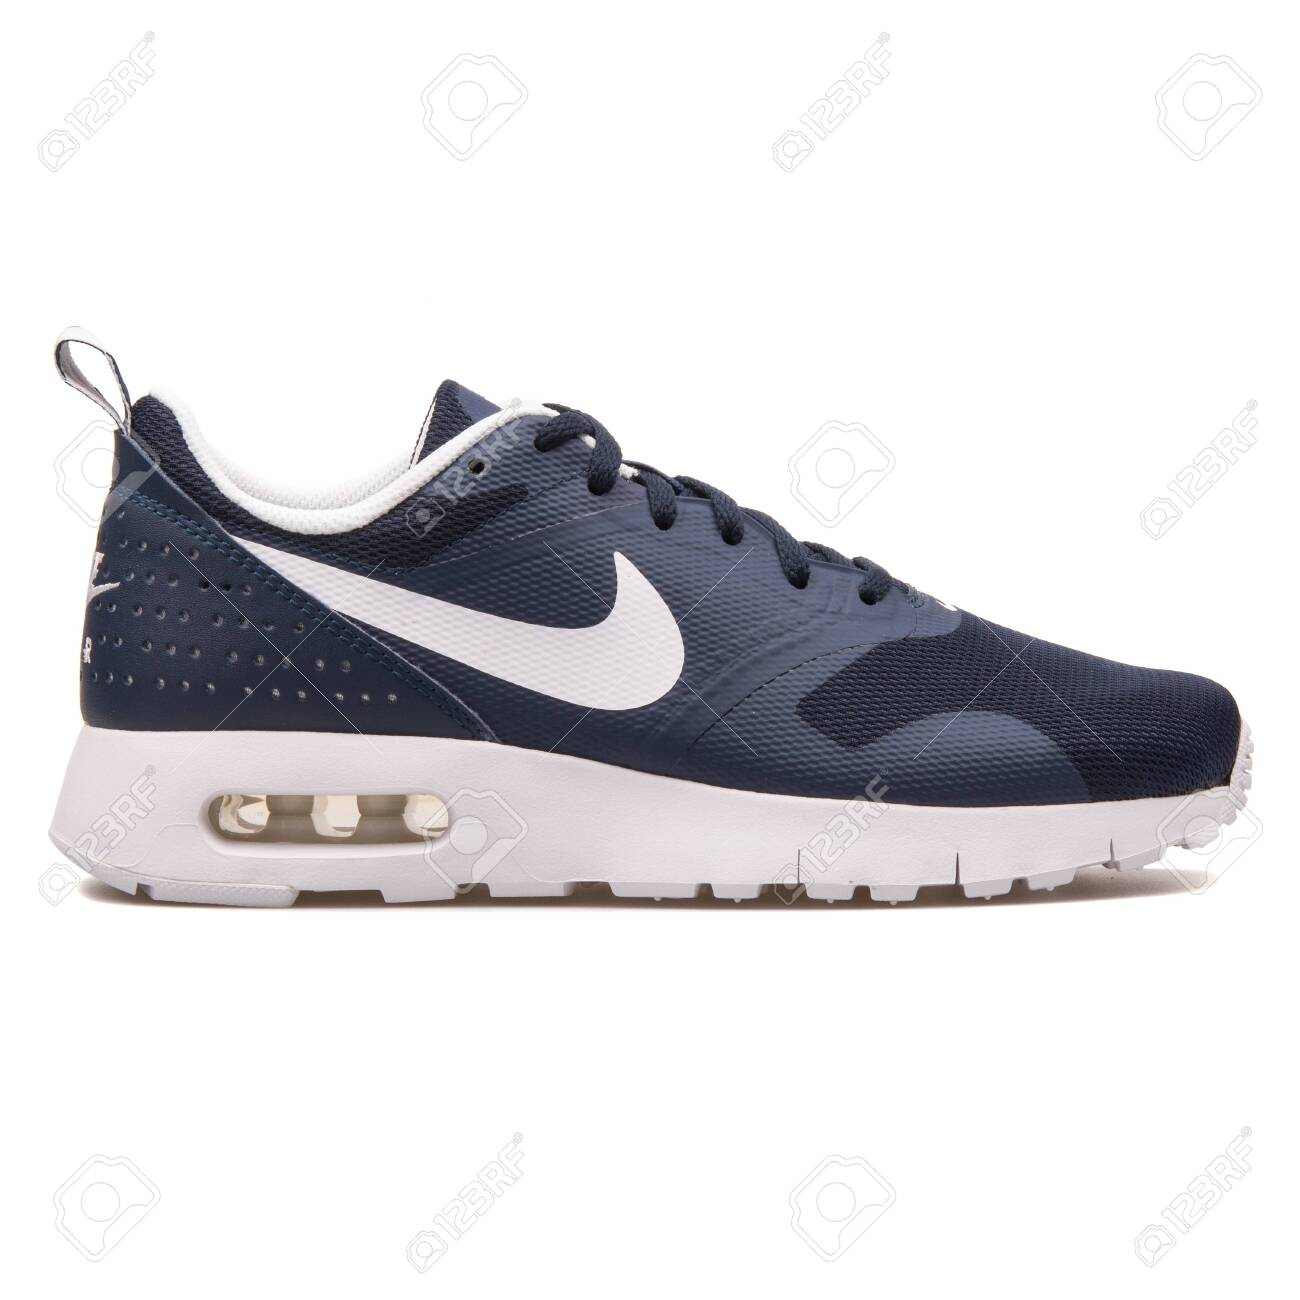 info for a9cff 2e764 VIENNA, AUSTRIA - AUGUST 30, 2017: Nike Air Max Tavas obsidian..